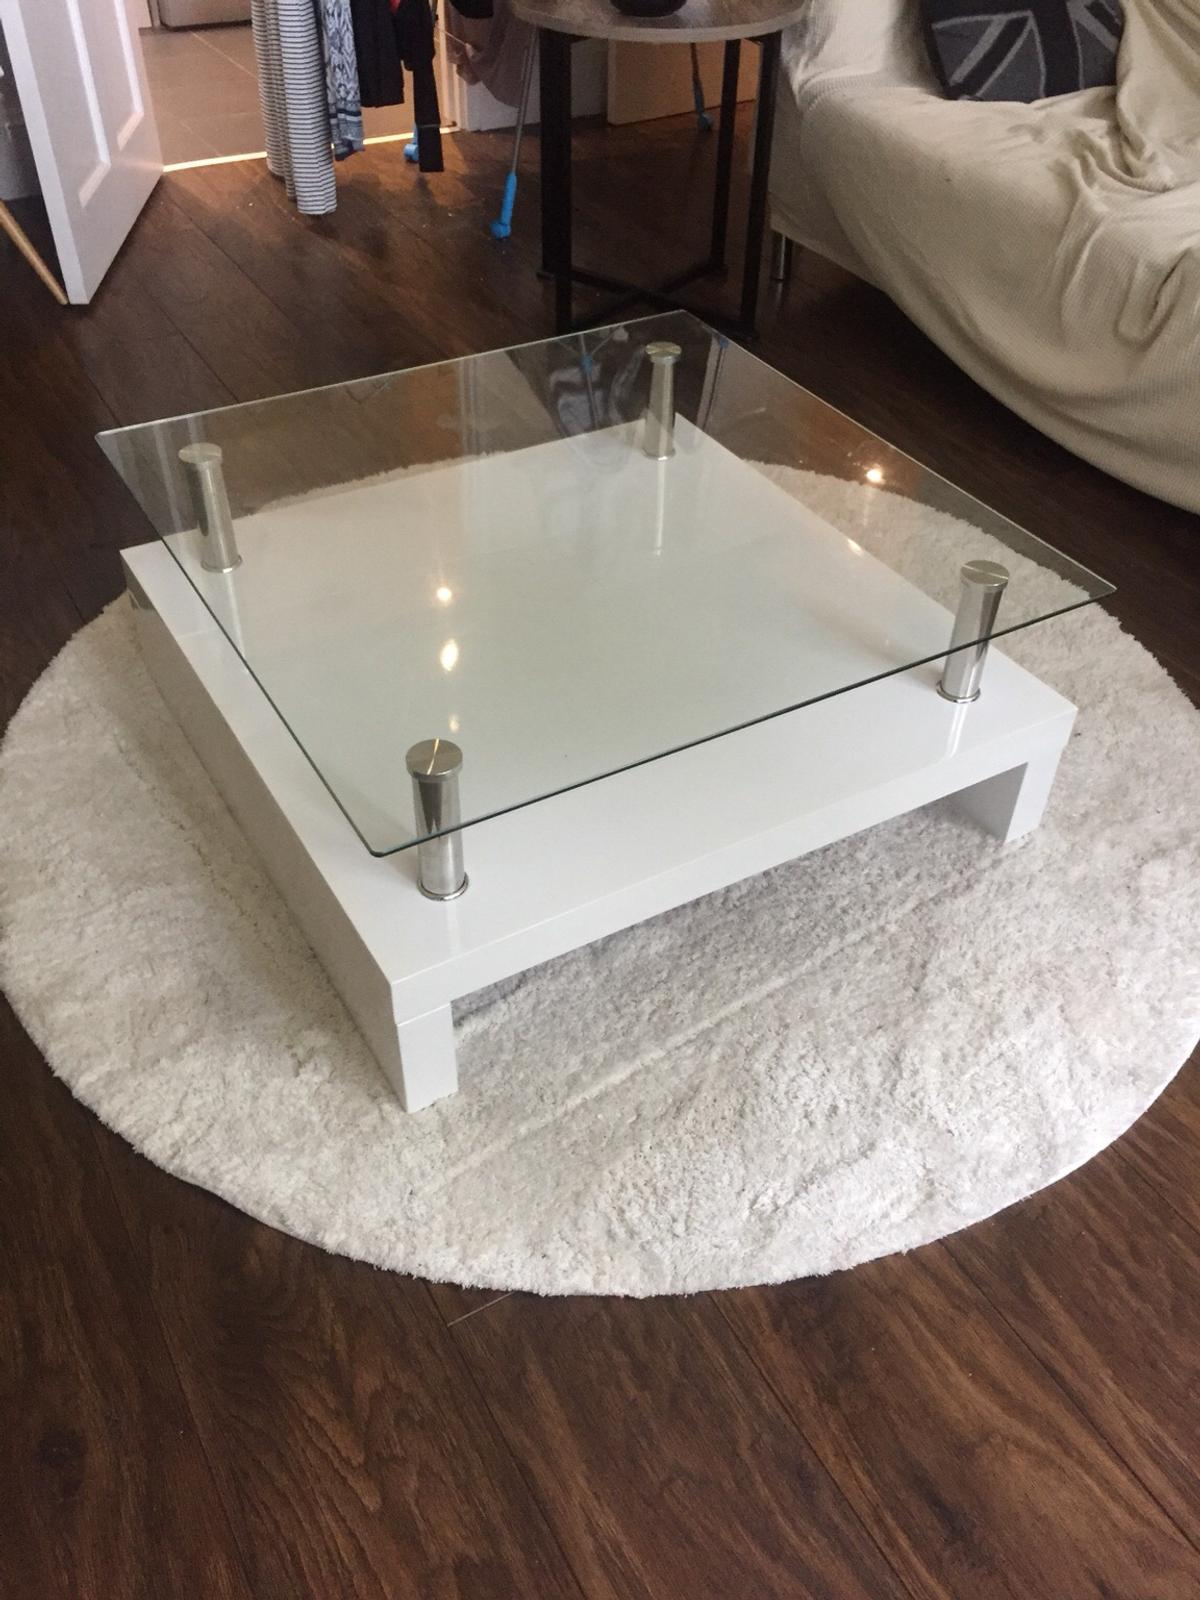 - Wayfair Kain Glass Coffee Table In EC1Y London Für £ 65,00 Zum